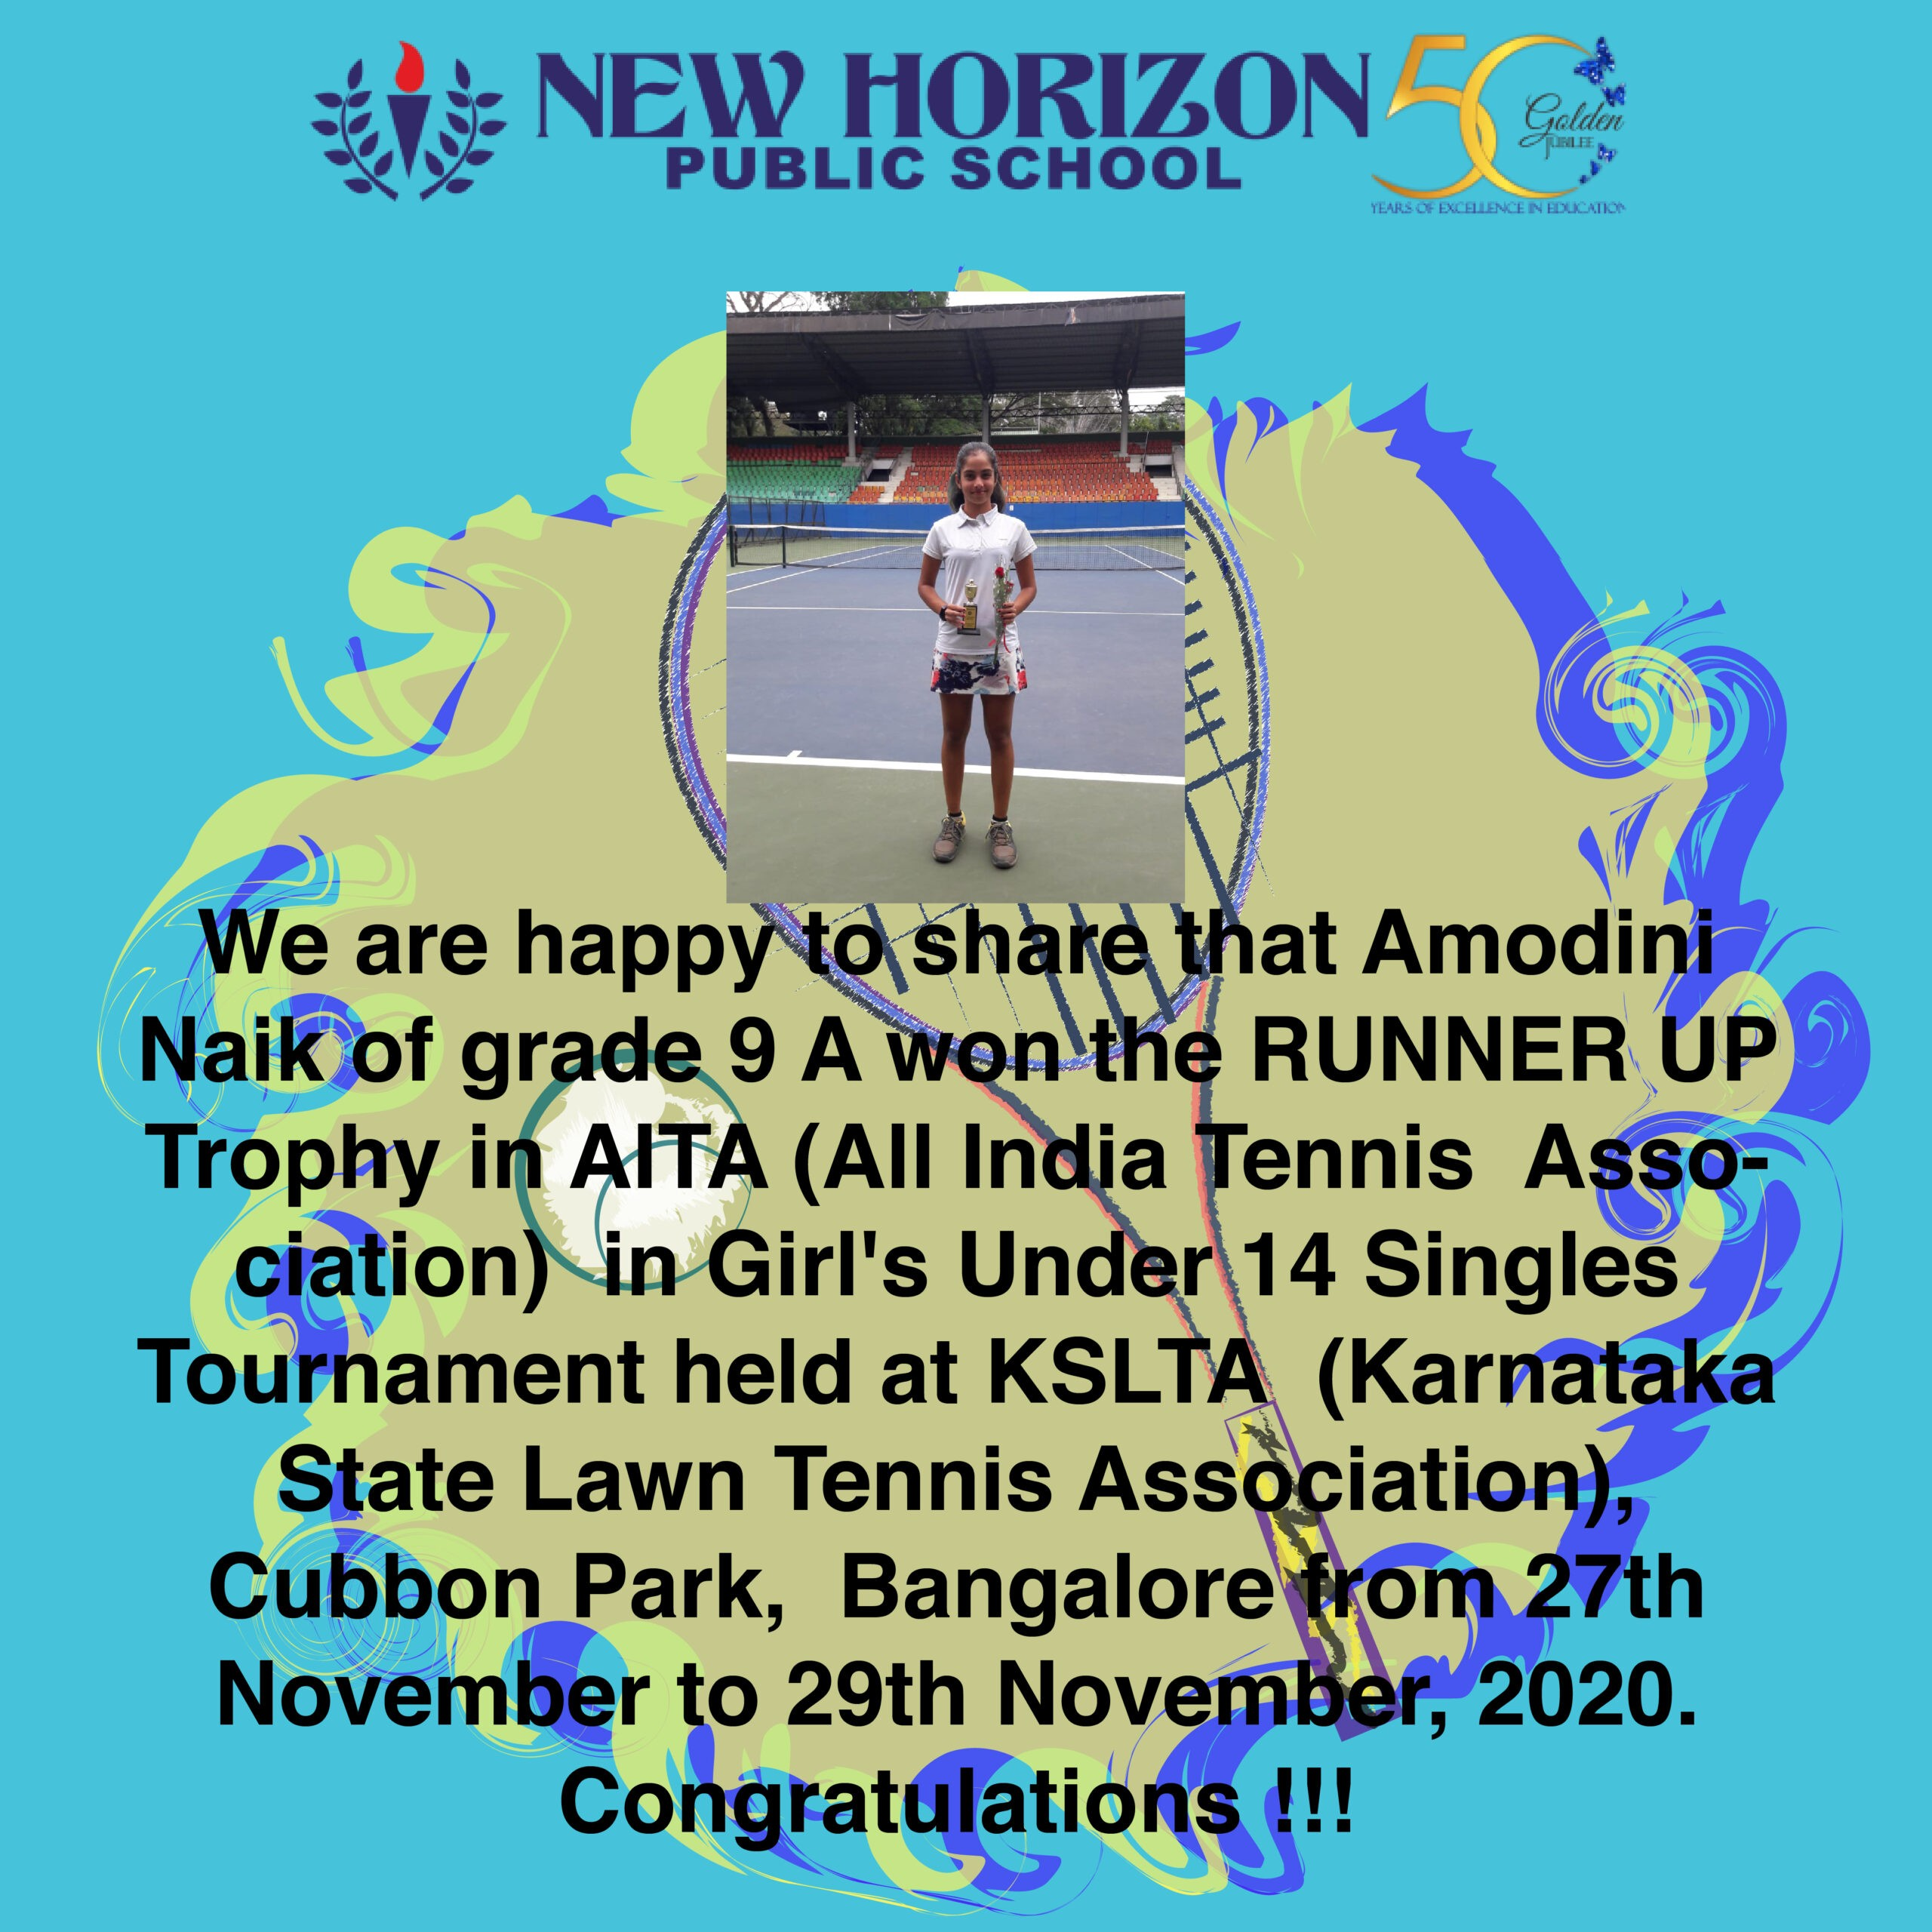 Amodini Naik of grade 9 'A' won the Runner up trophy in AITA